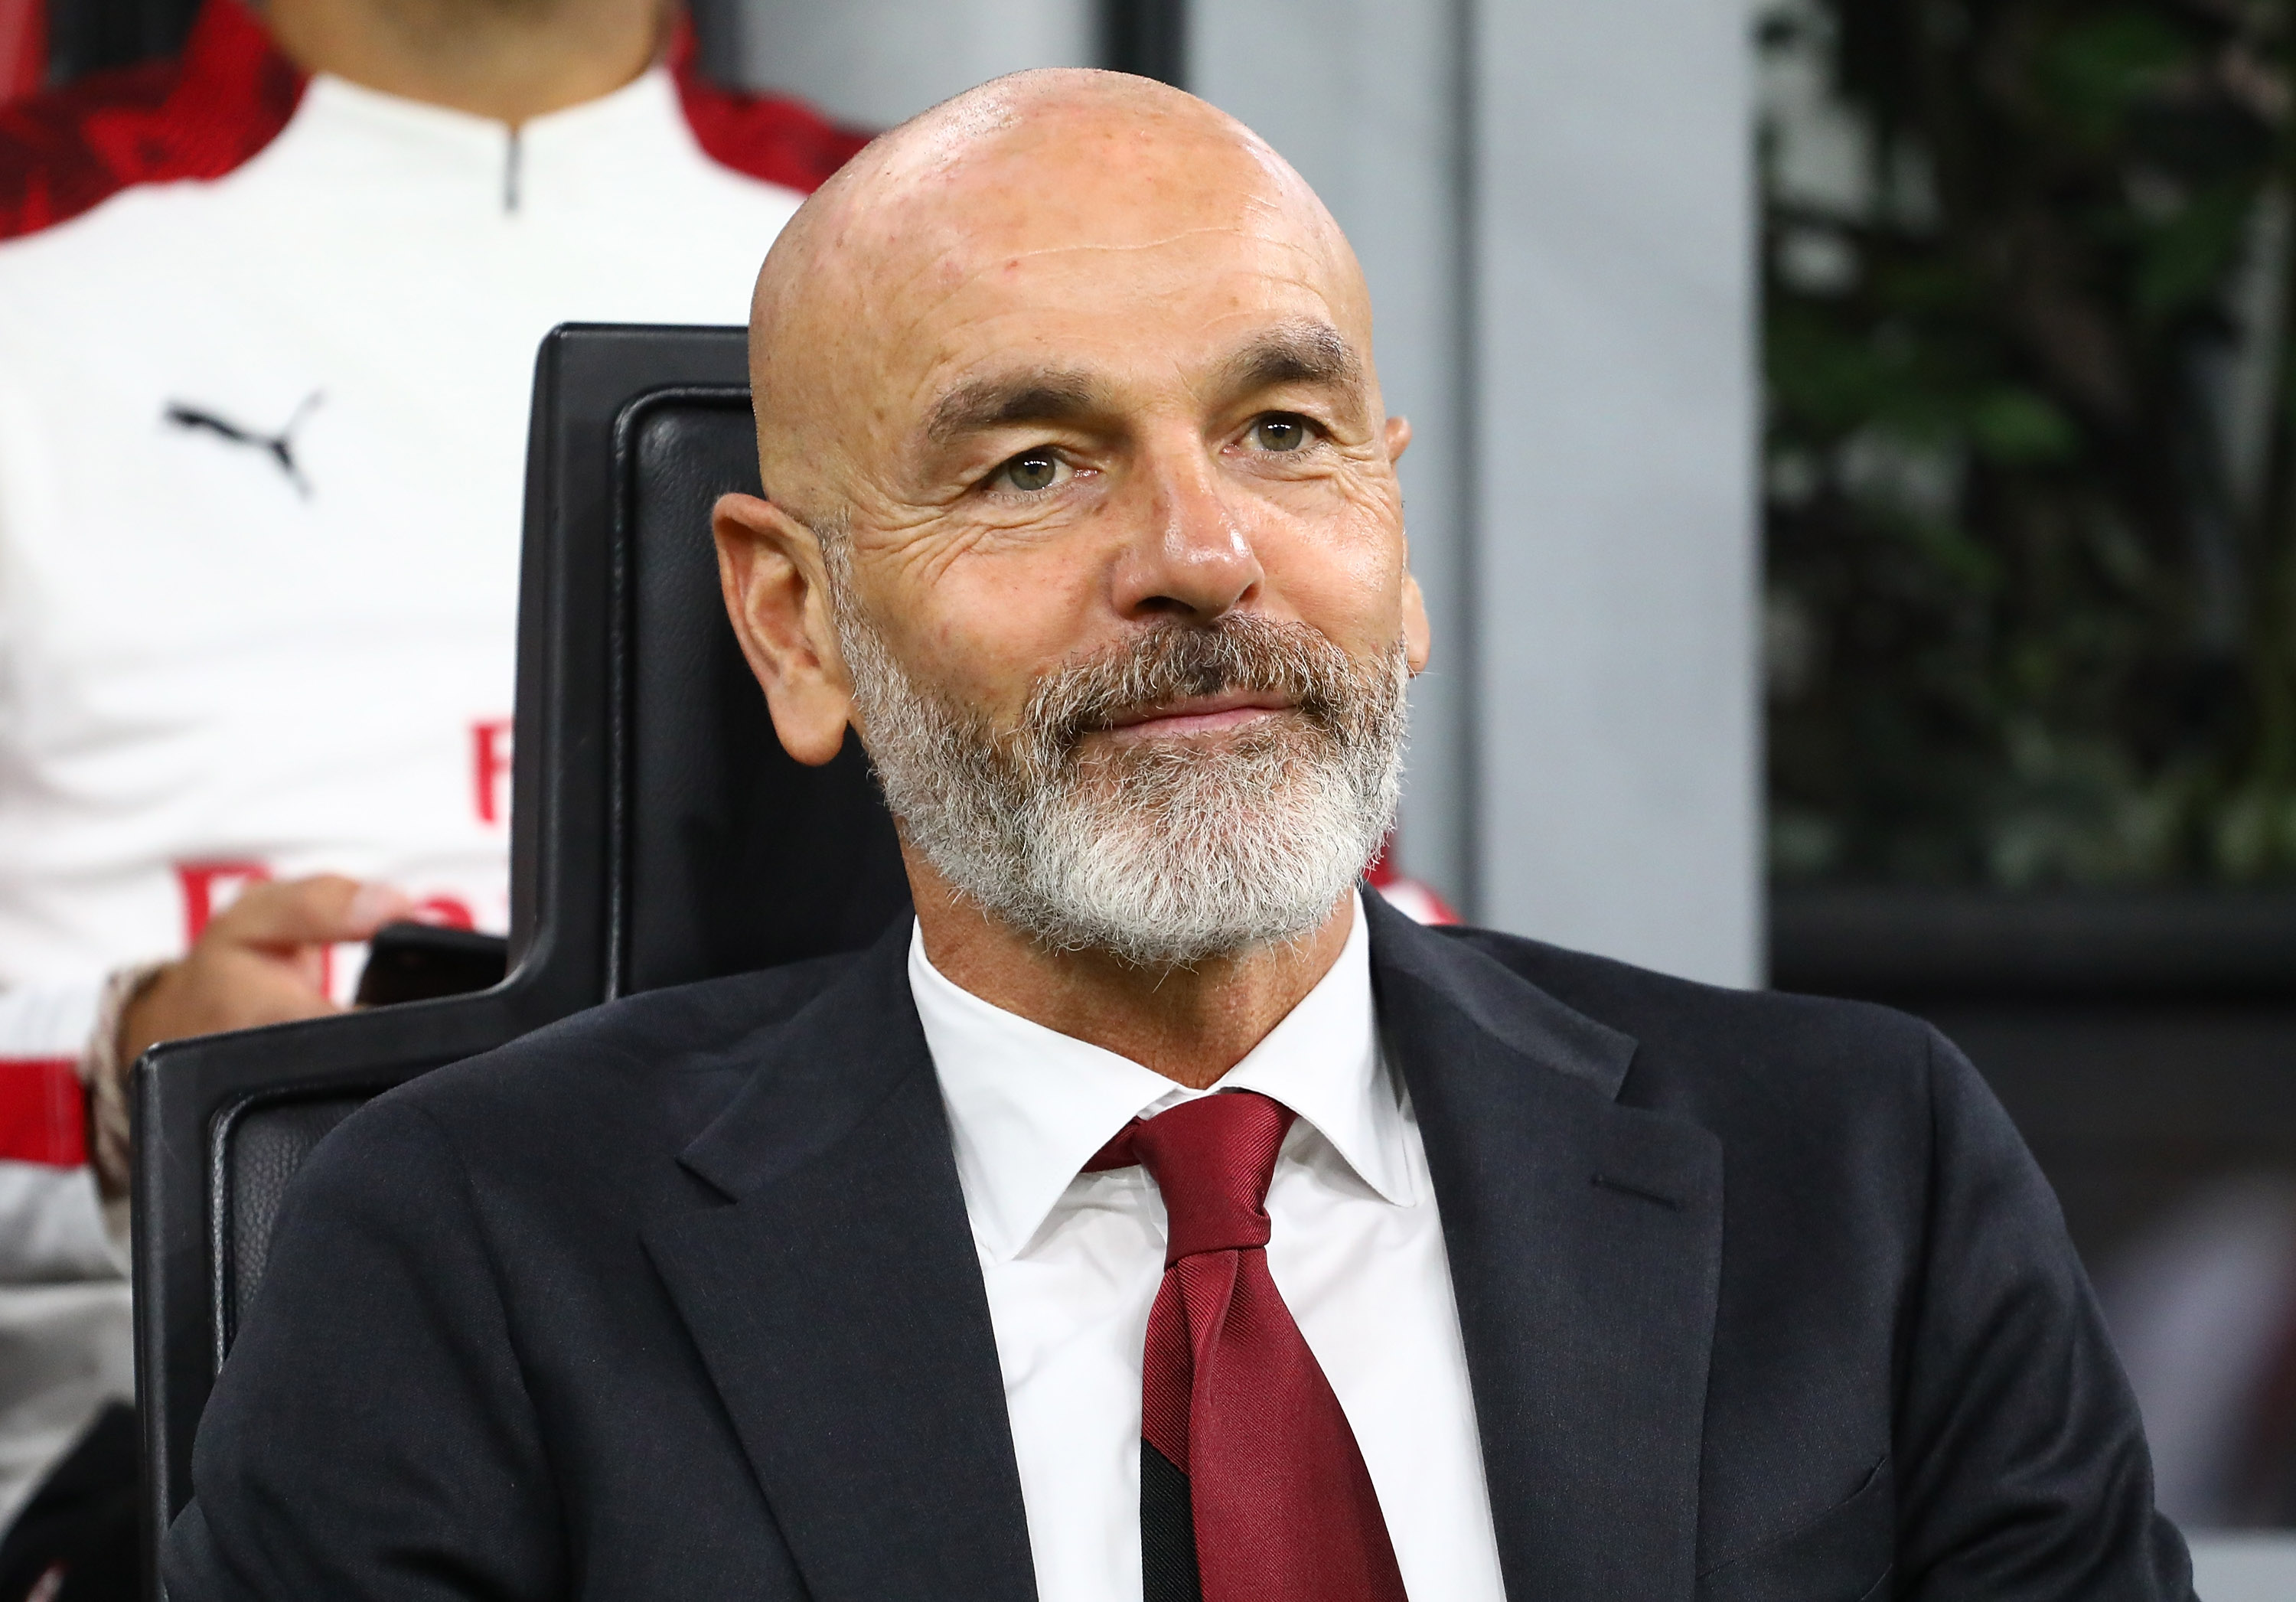 Can Stefano Pioli lead Milan to a win against his former employers? (Photo by Marco Luzzani/Getty Images)